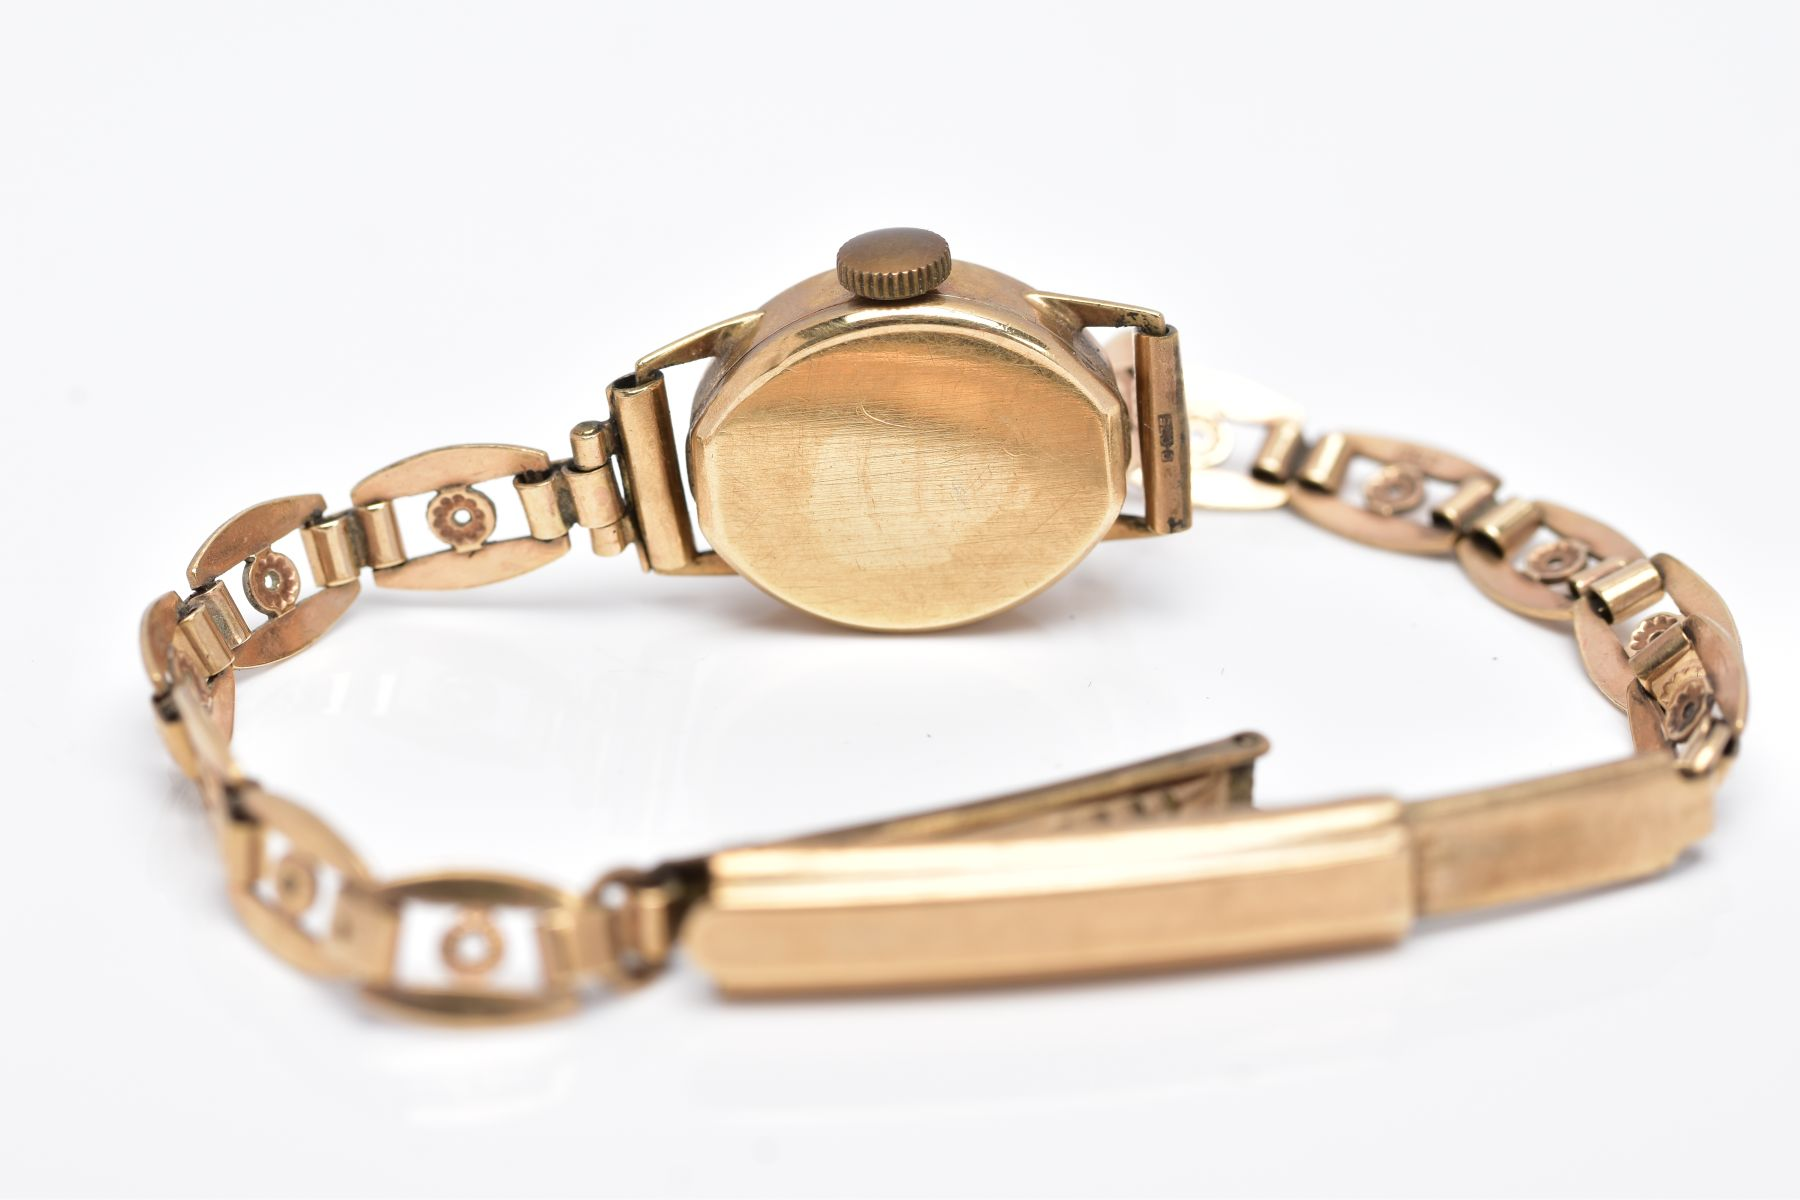 A LADY'S 9CT GOLD ROTARY WRISTWATCH', oval case measuring approximately 16.5mm x 14.0mm, - Image 4 of 5